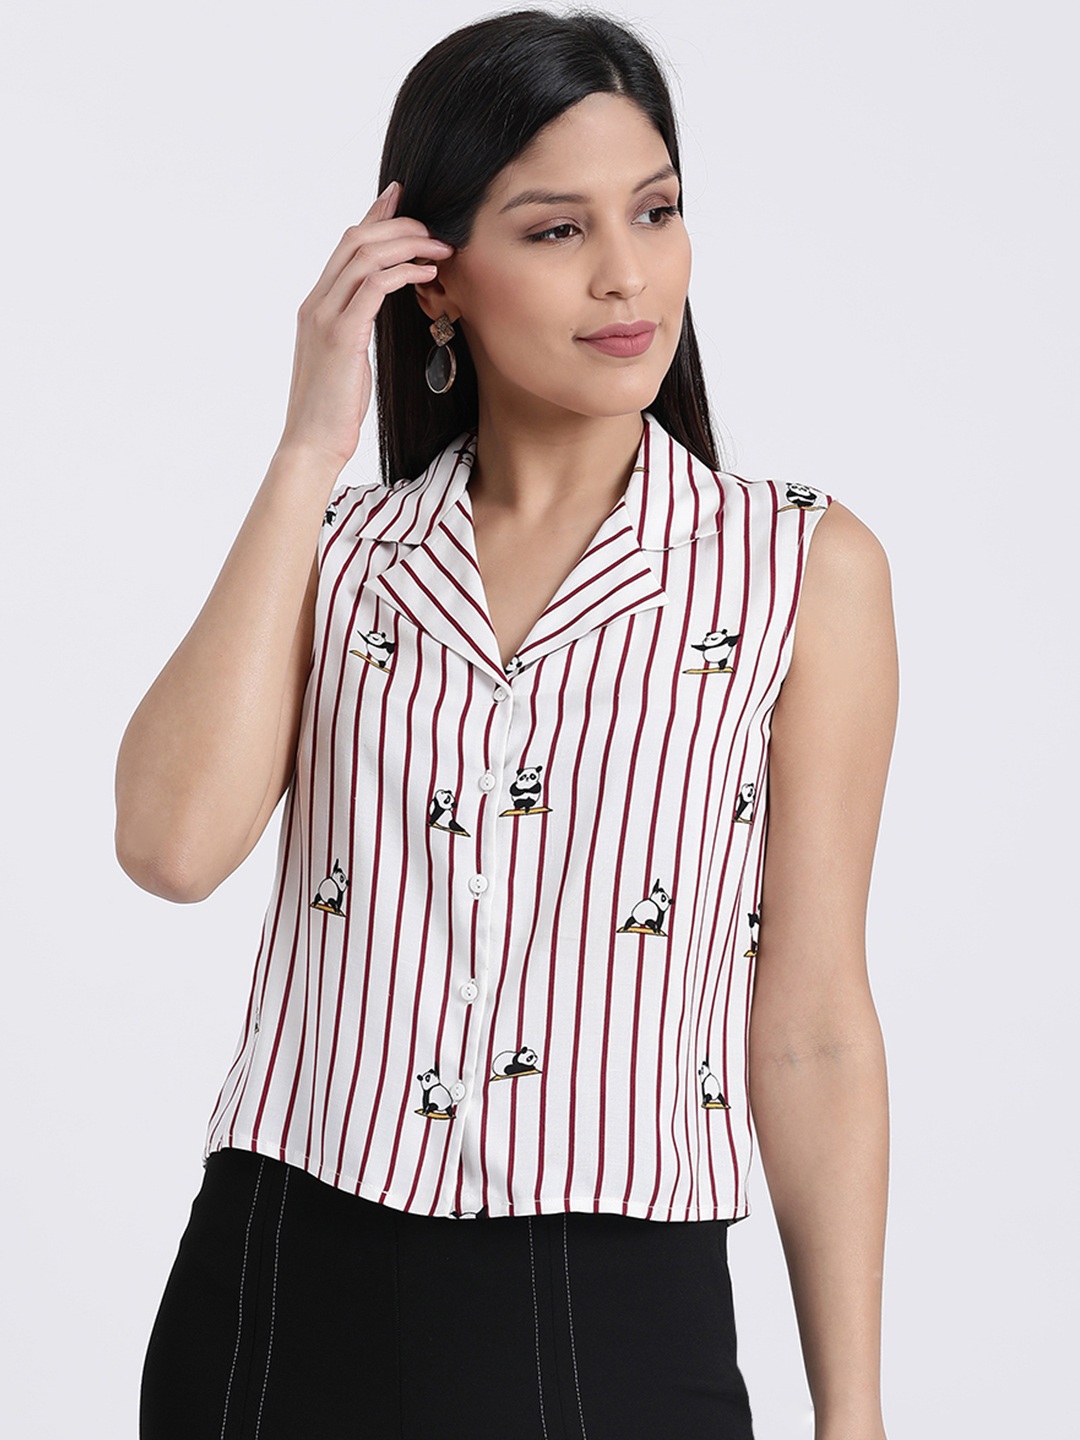 Zink London   Zink London White Casual Shirts for Women